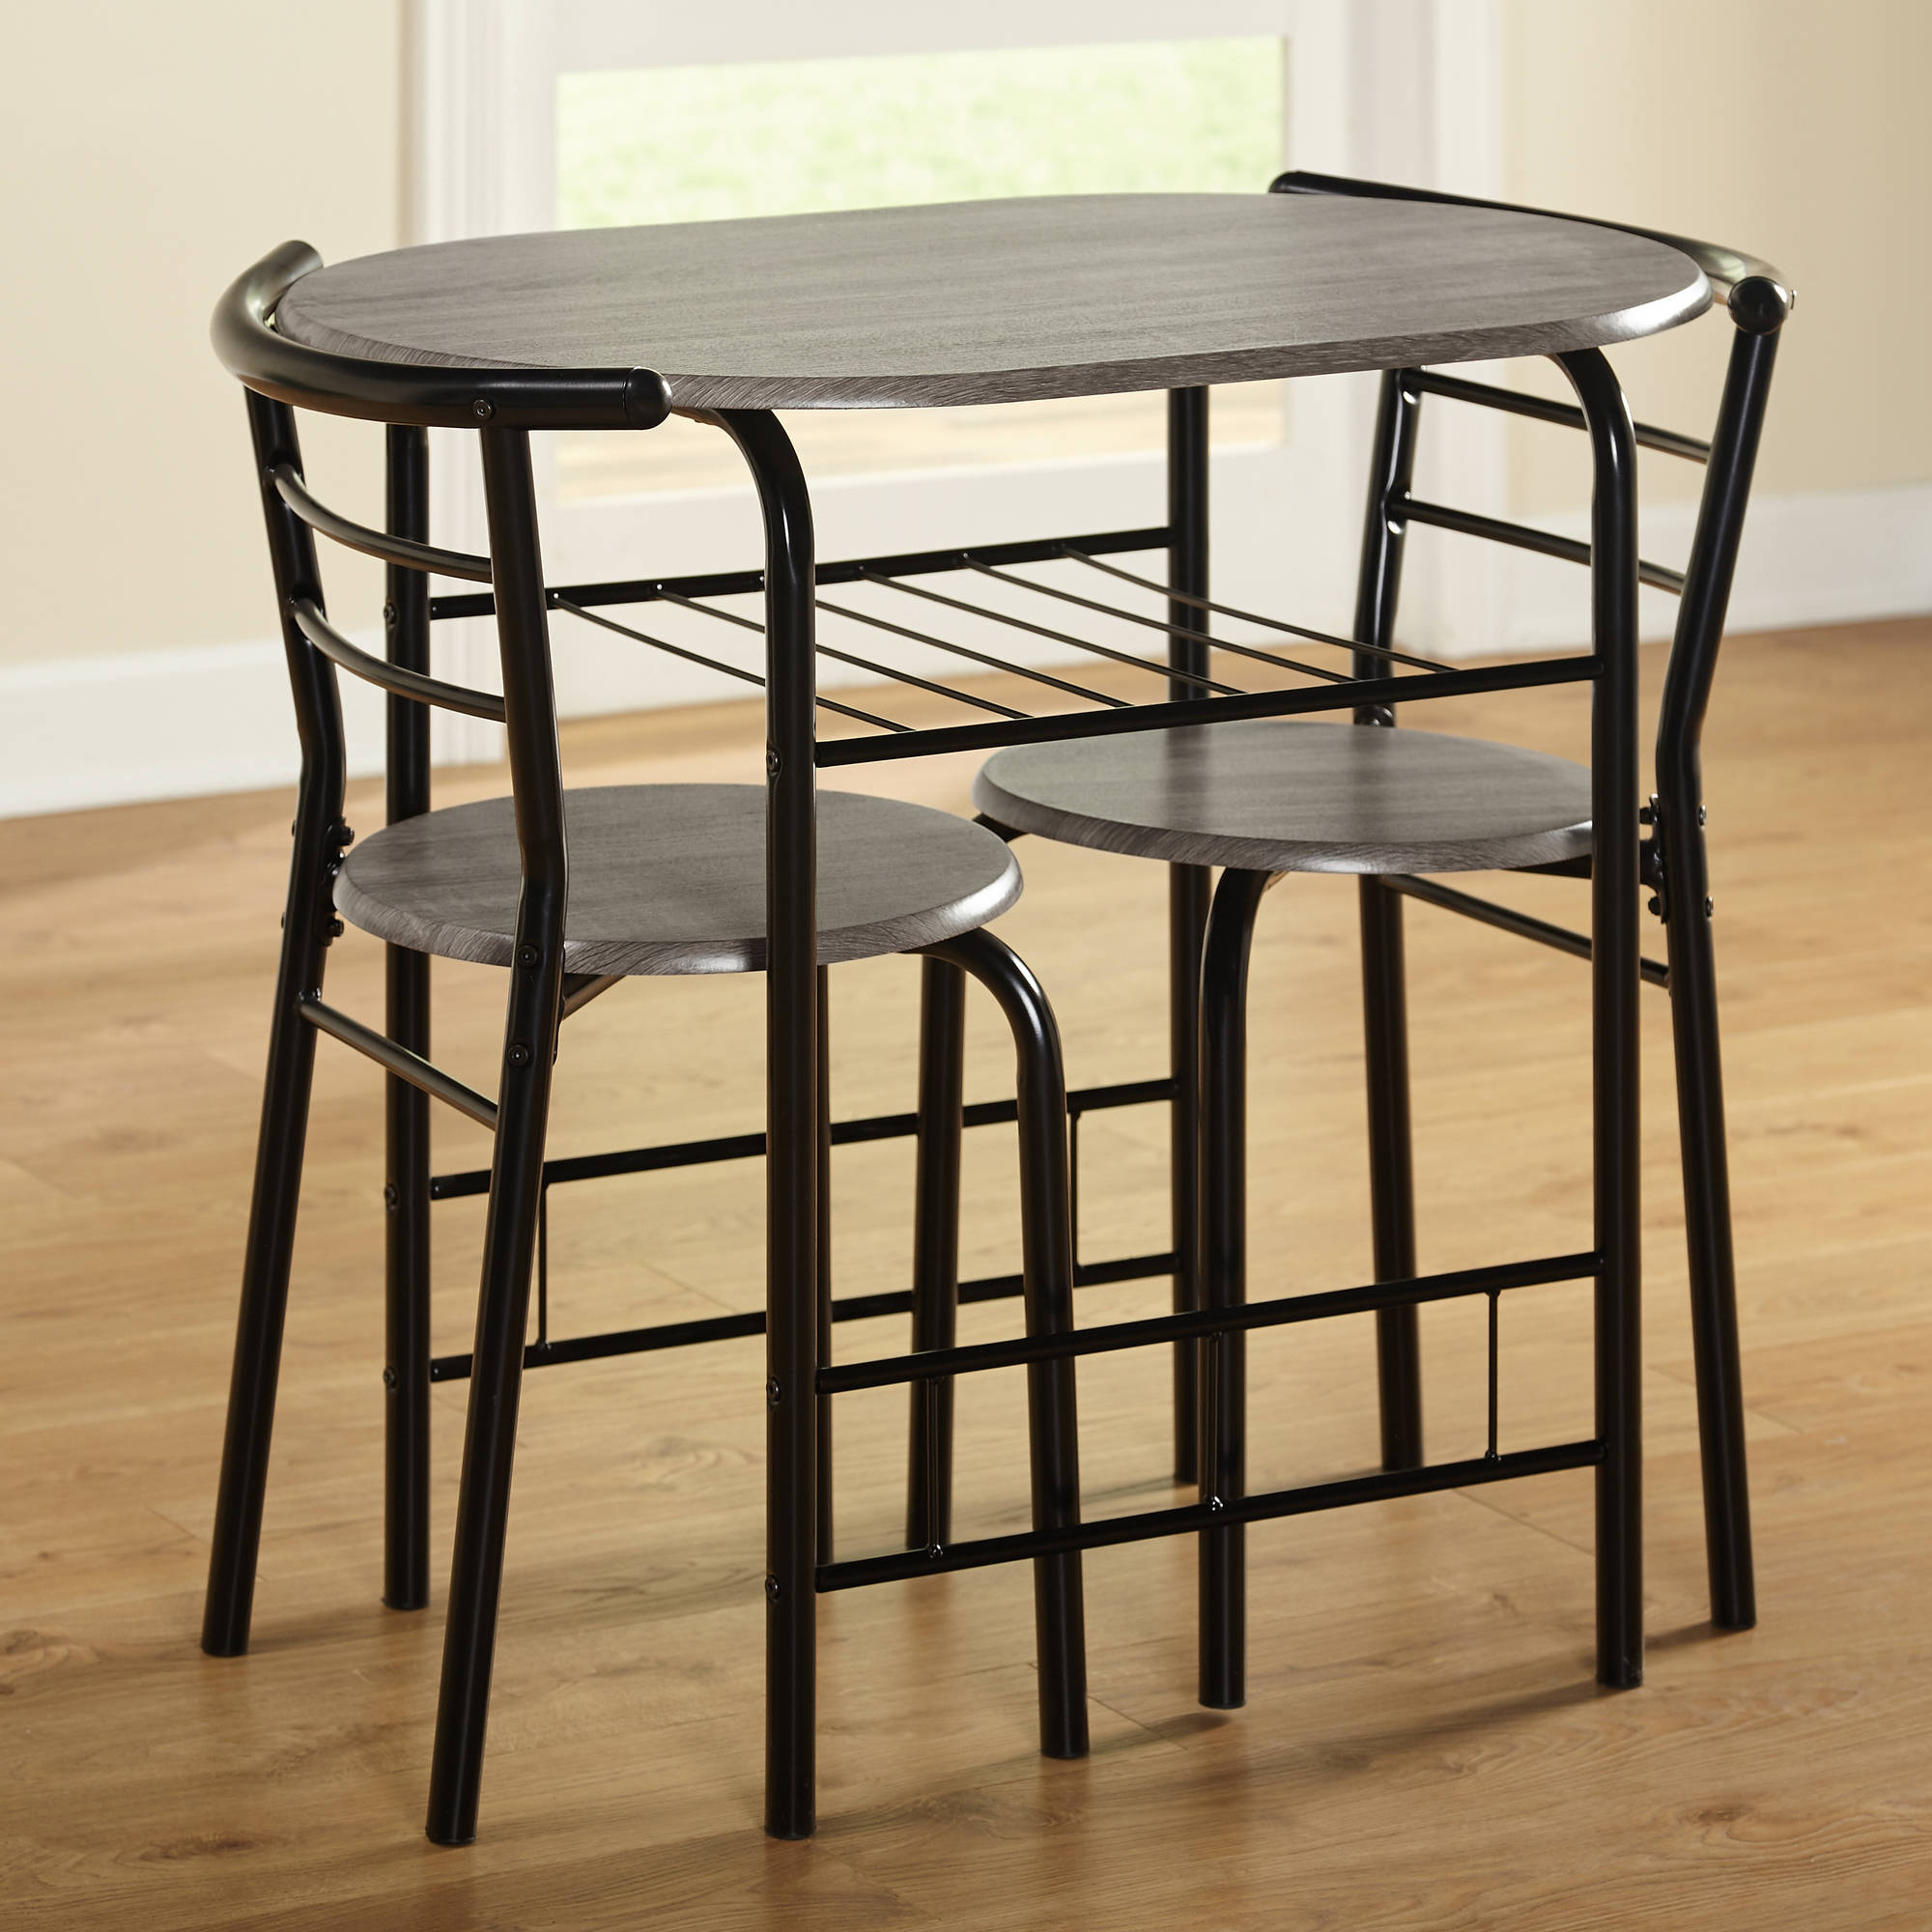 ... Picture 2 of 3; Picture 3 of 3. 3-Piece Bistro Set ... & Bistro Table Set 3 Piece Dining for 2 Furniture Chair Kitchen Coffee ...